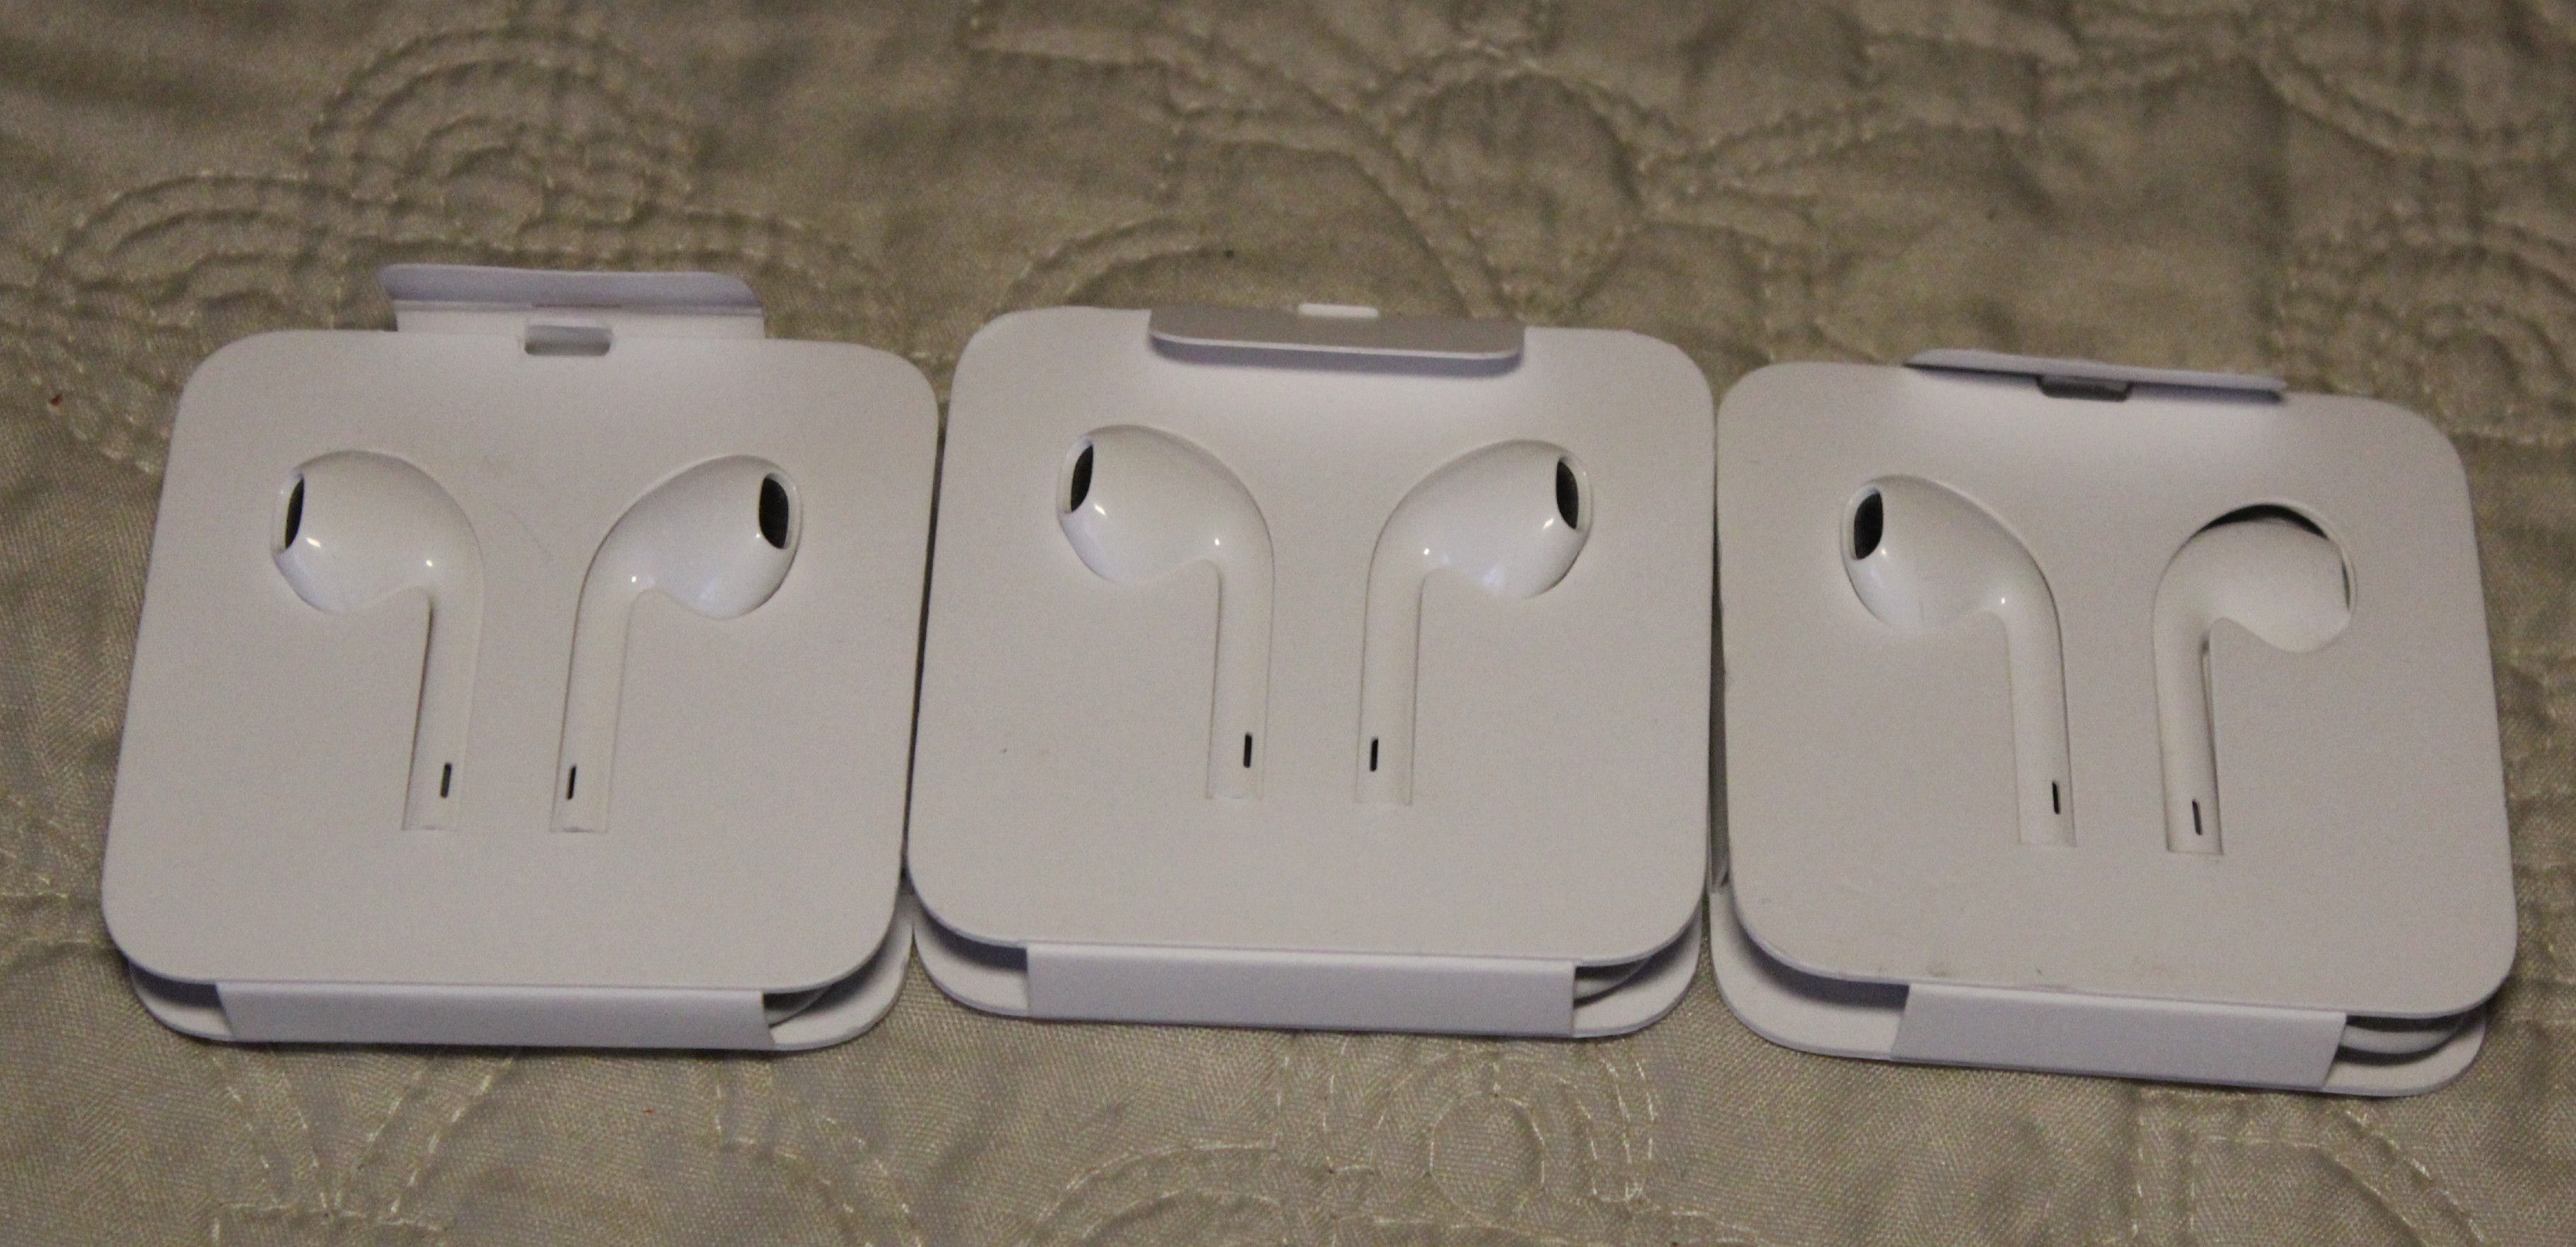 IPHON Headphones